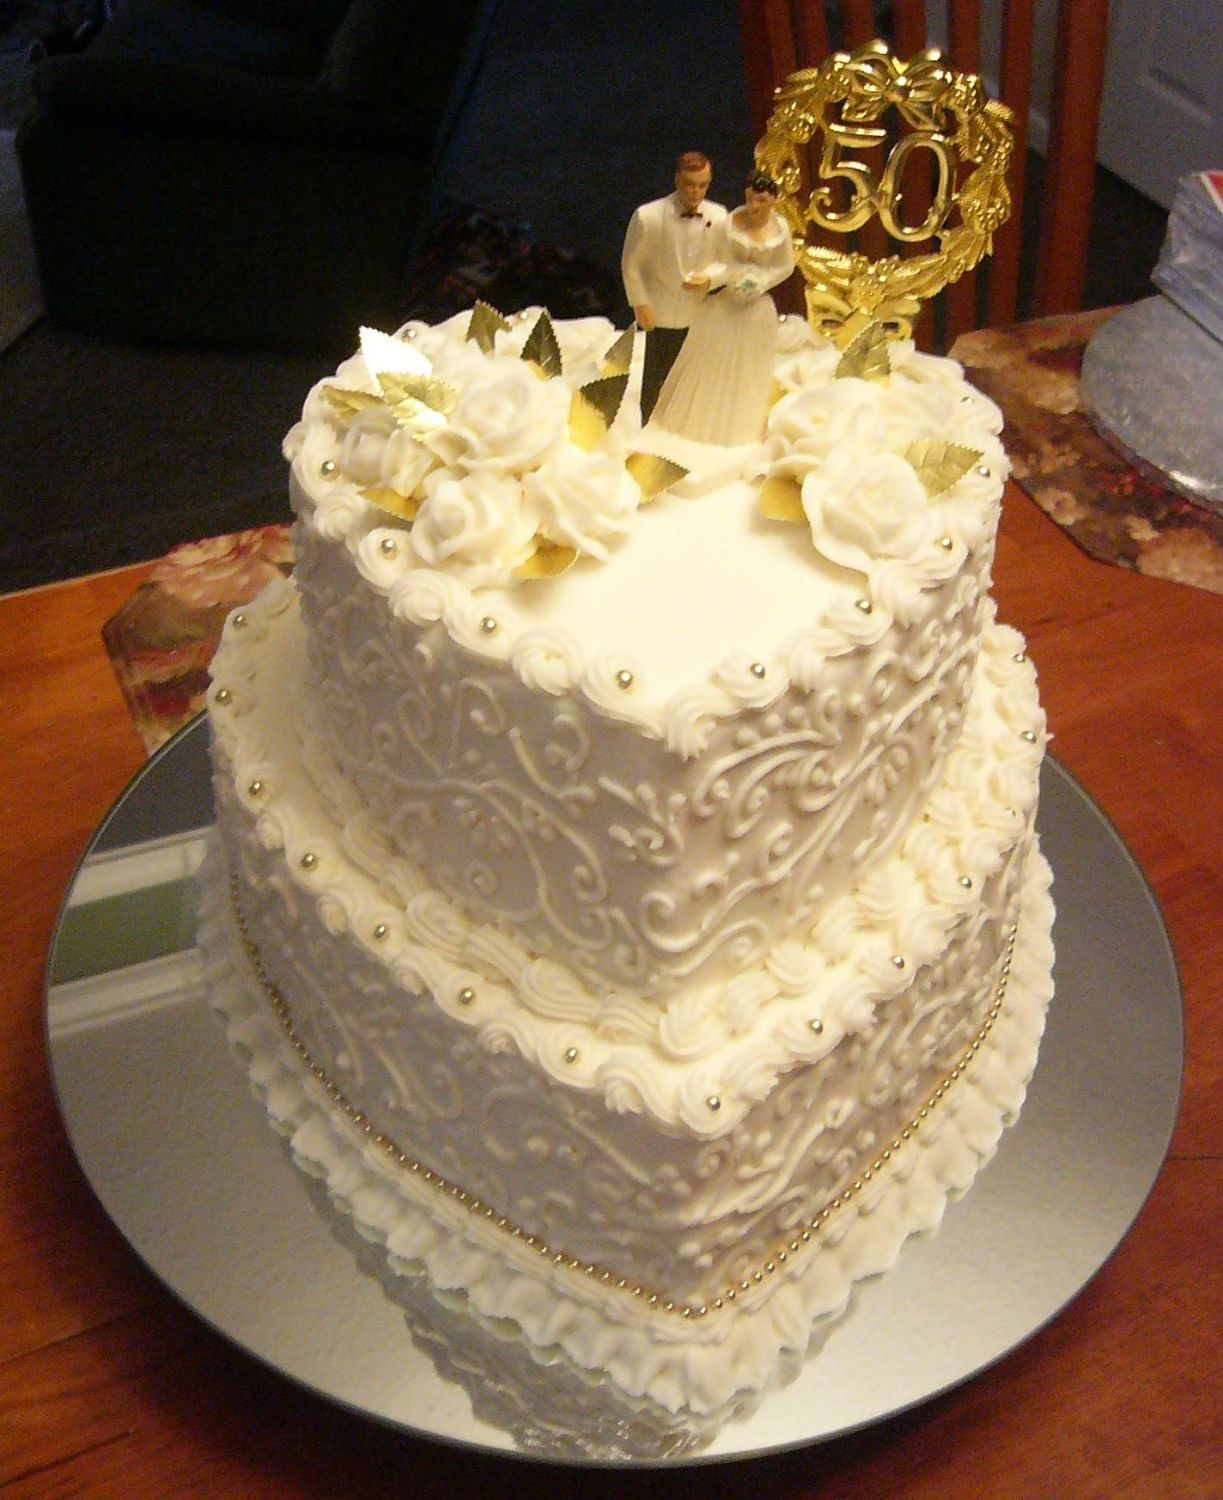 50th wedding anniversary cake - Wasc with lemon filling. Very ...